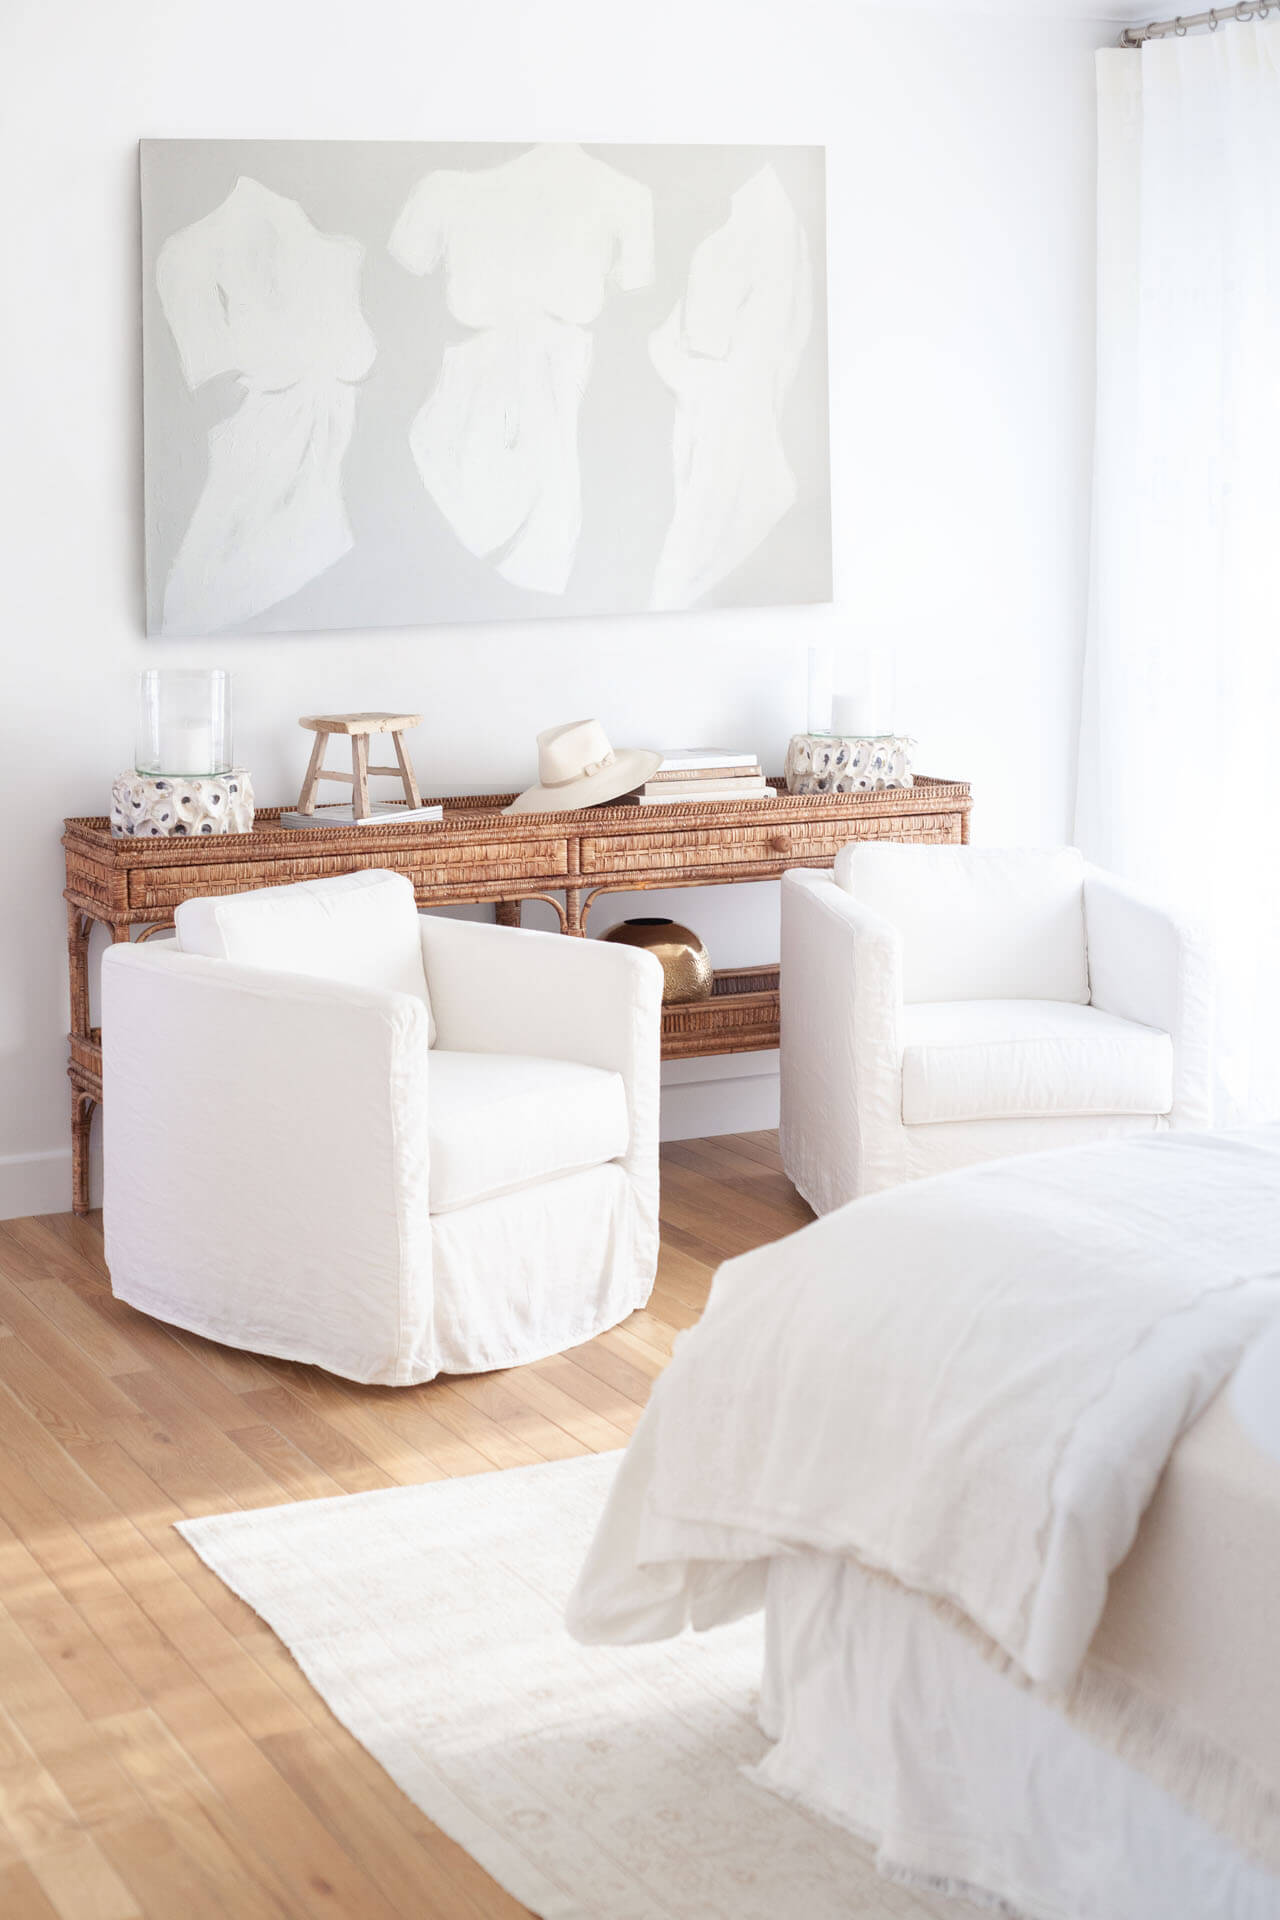 Guest bedroom with natural hardwood flooring and white decor